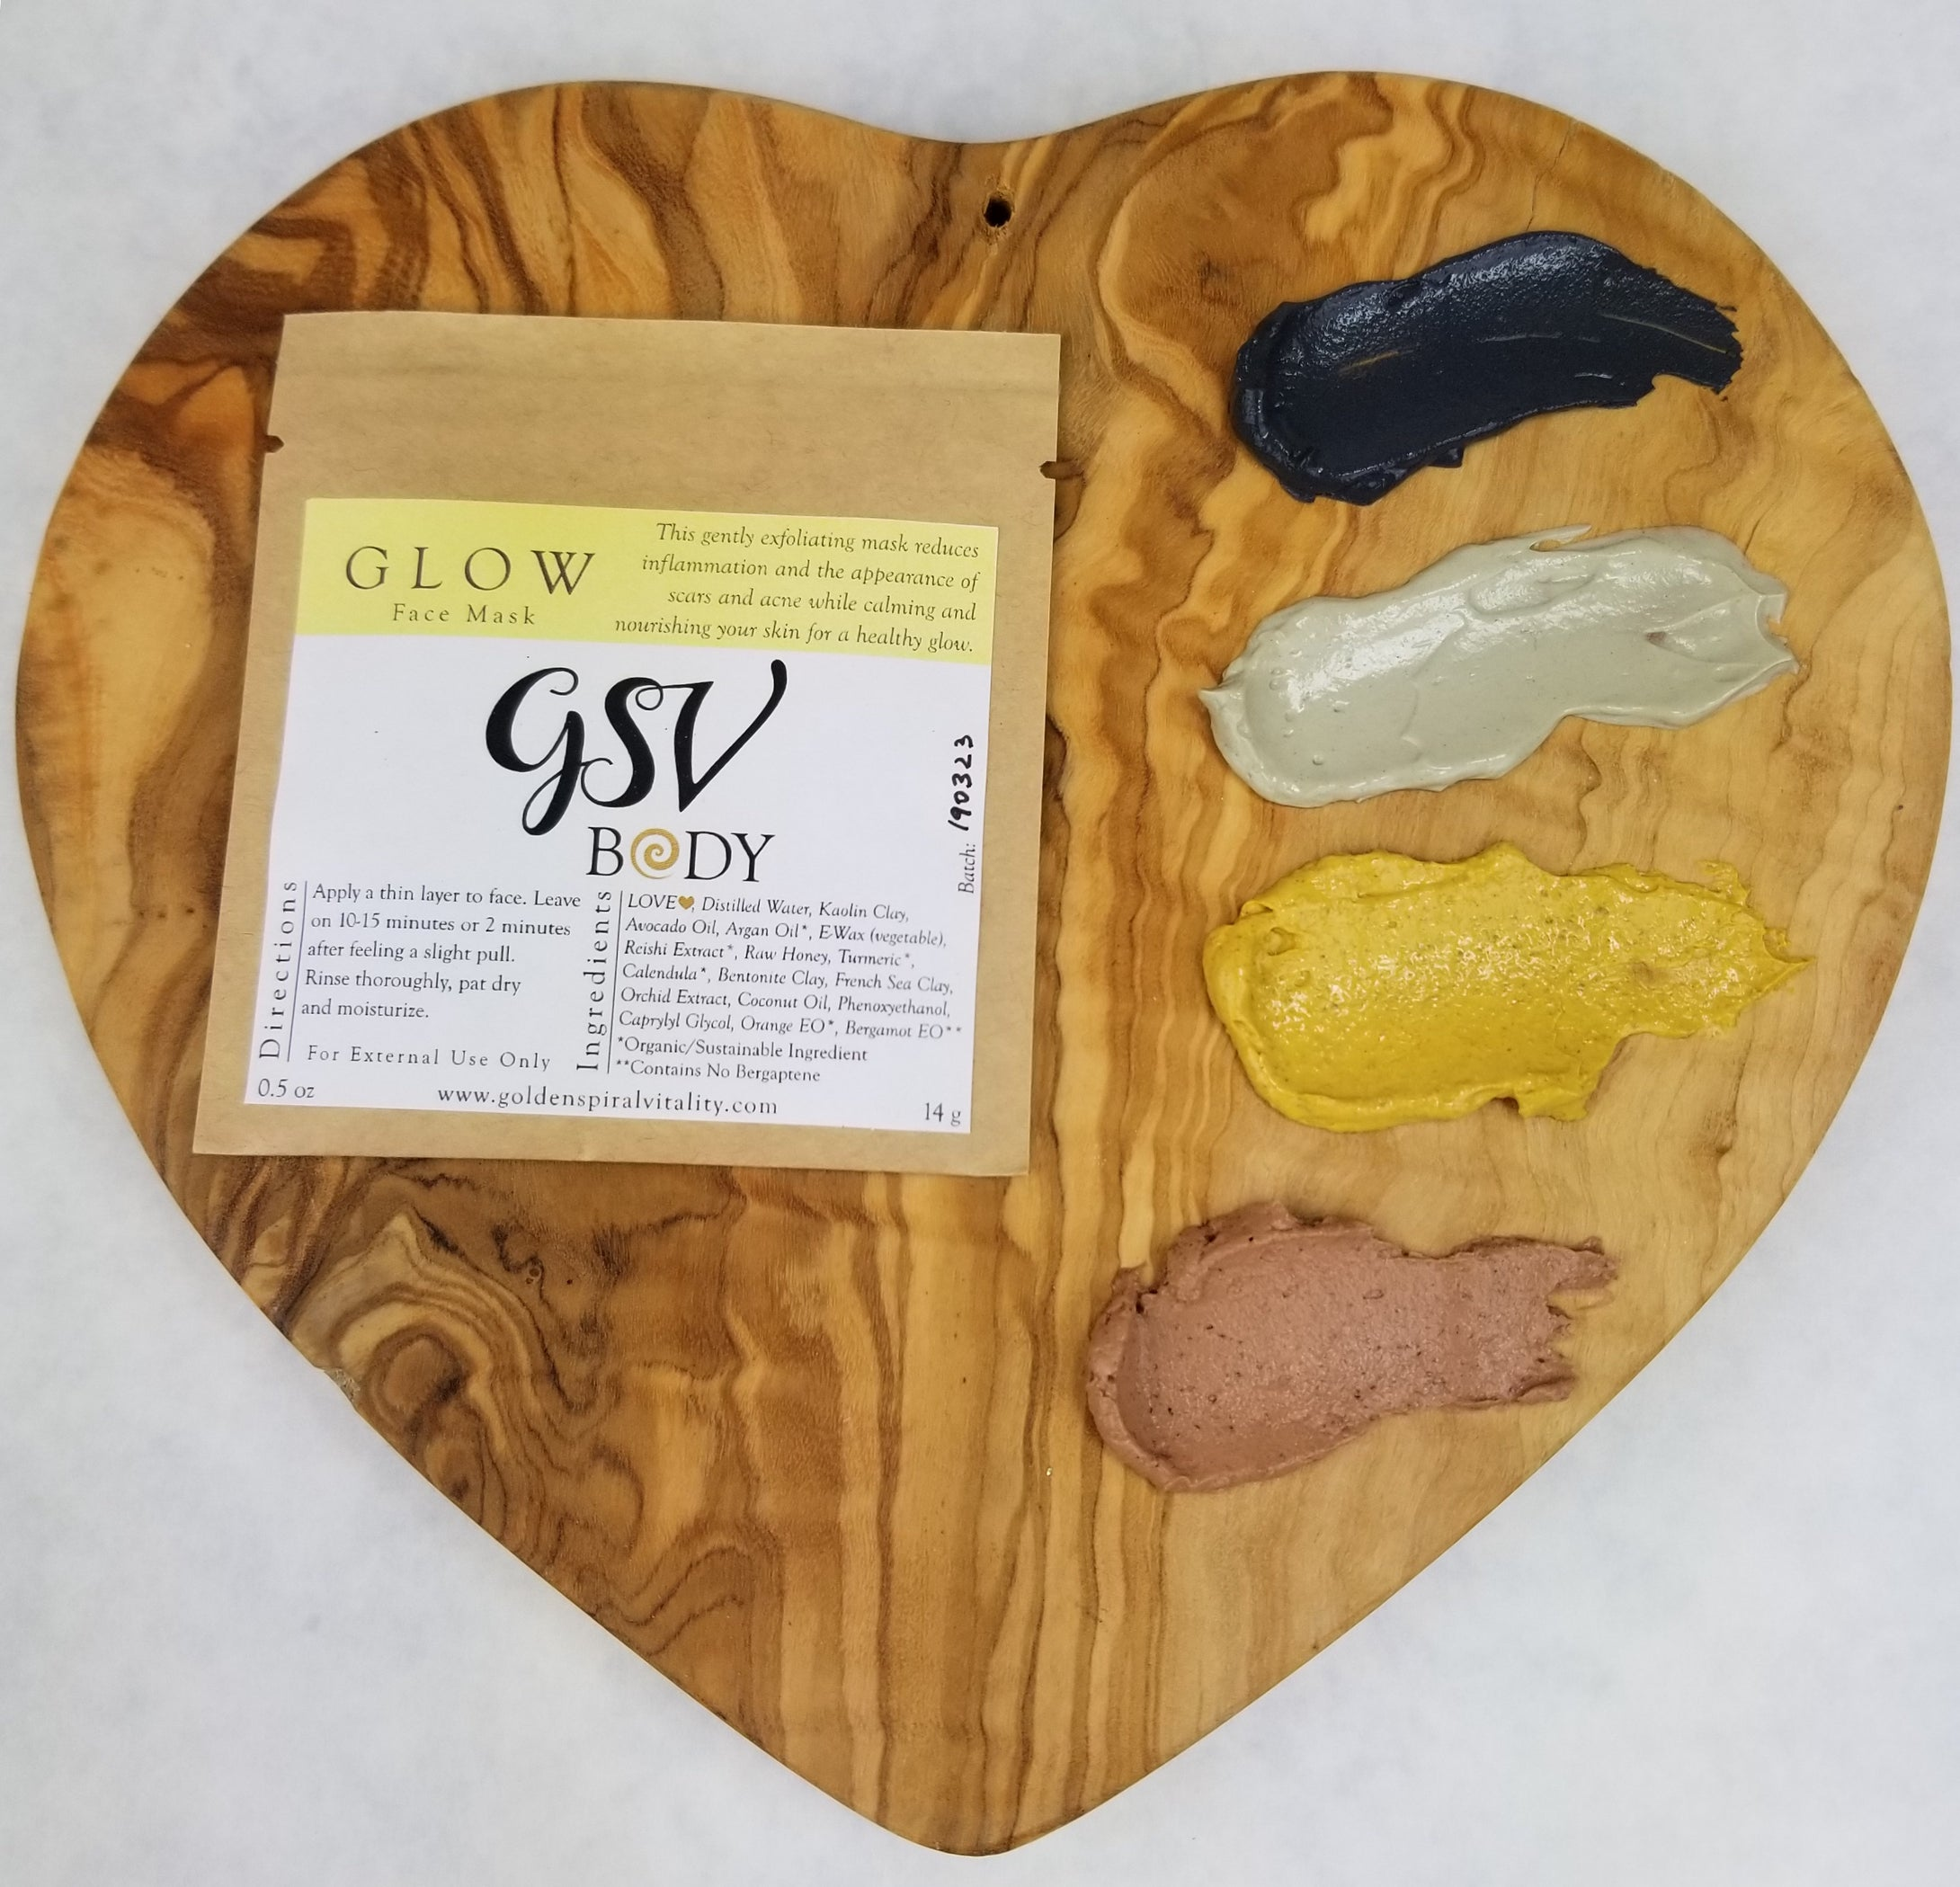 Glow Face Mask - Turmeric, Honey, Calendula, Face Mask